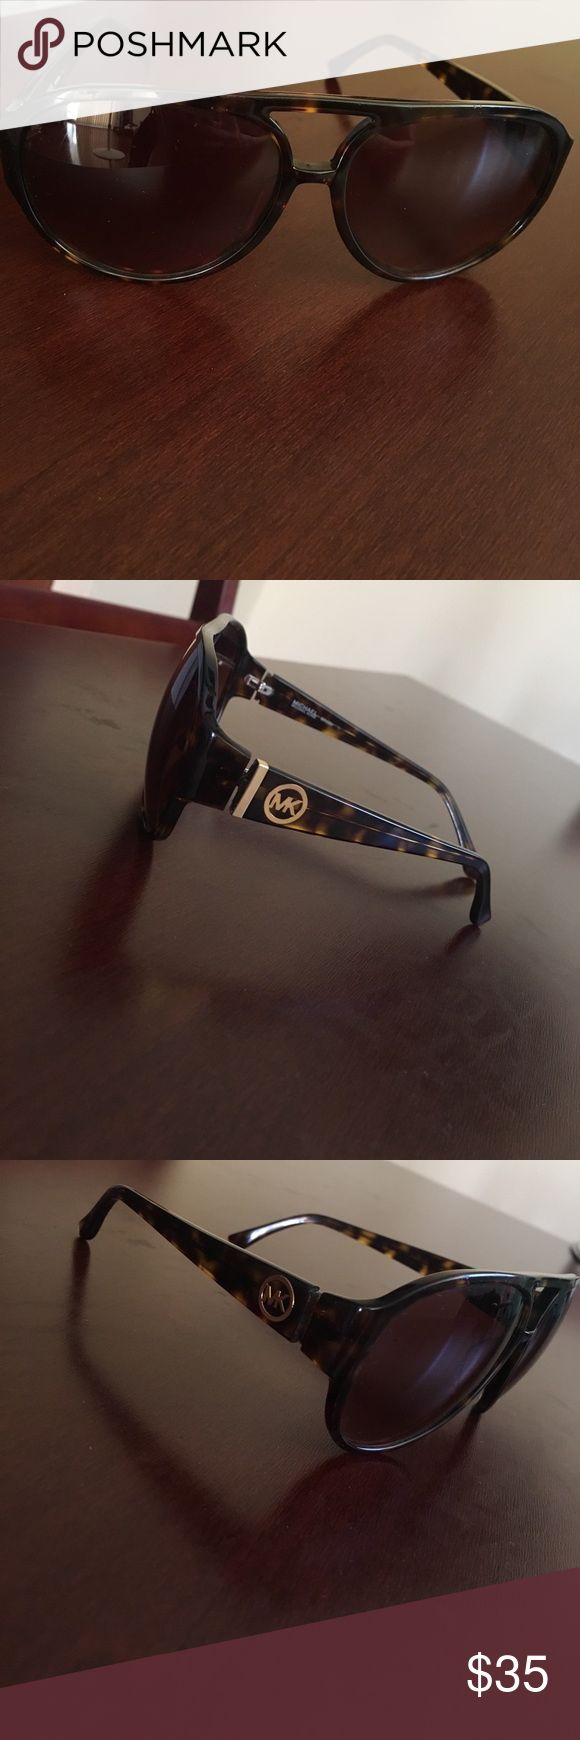 Michael Kors sunglasses Women's Michael Kors sunglasses-no case. Missing a little gold strip on the right hand side. (Refer to the photos) Michael Kors Accessories Glasses